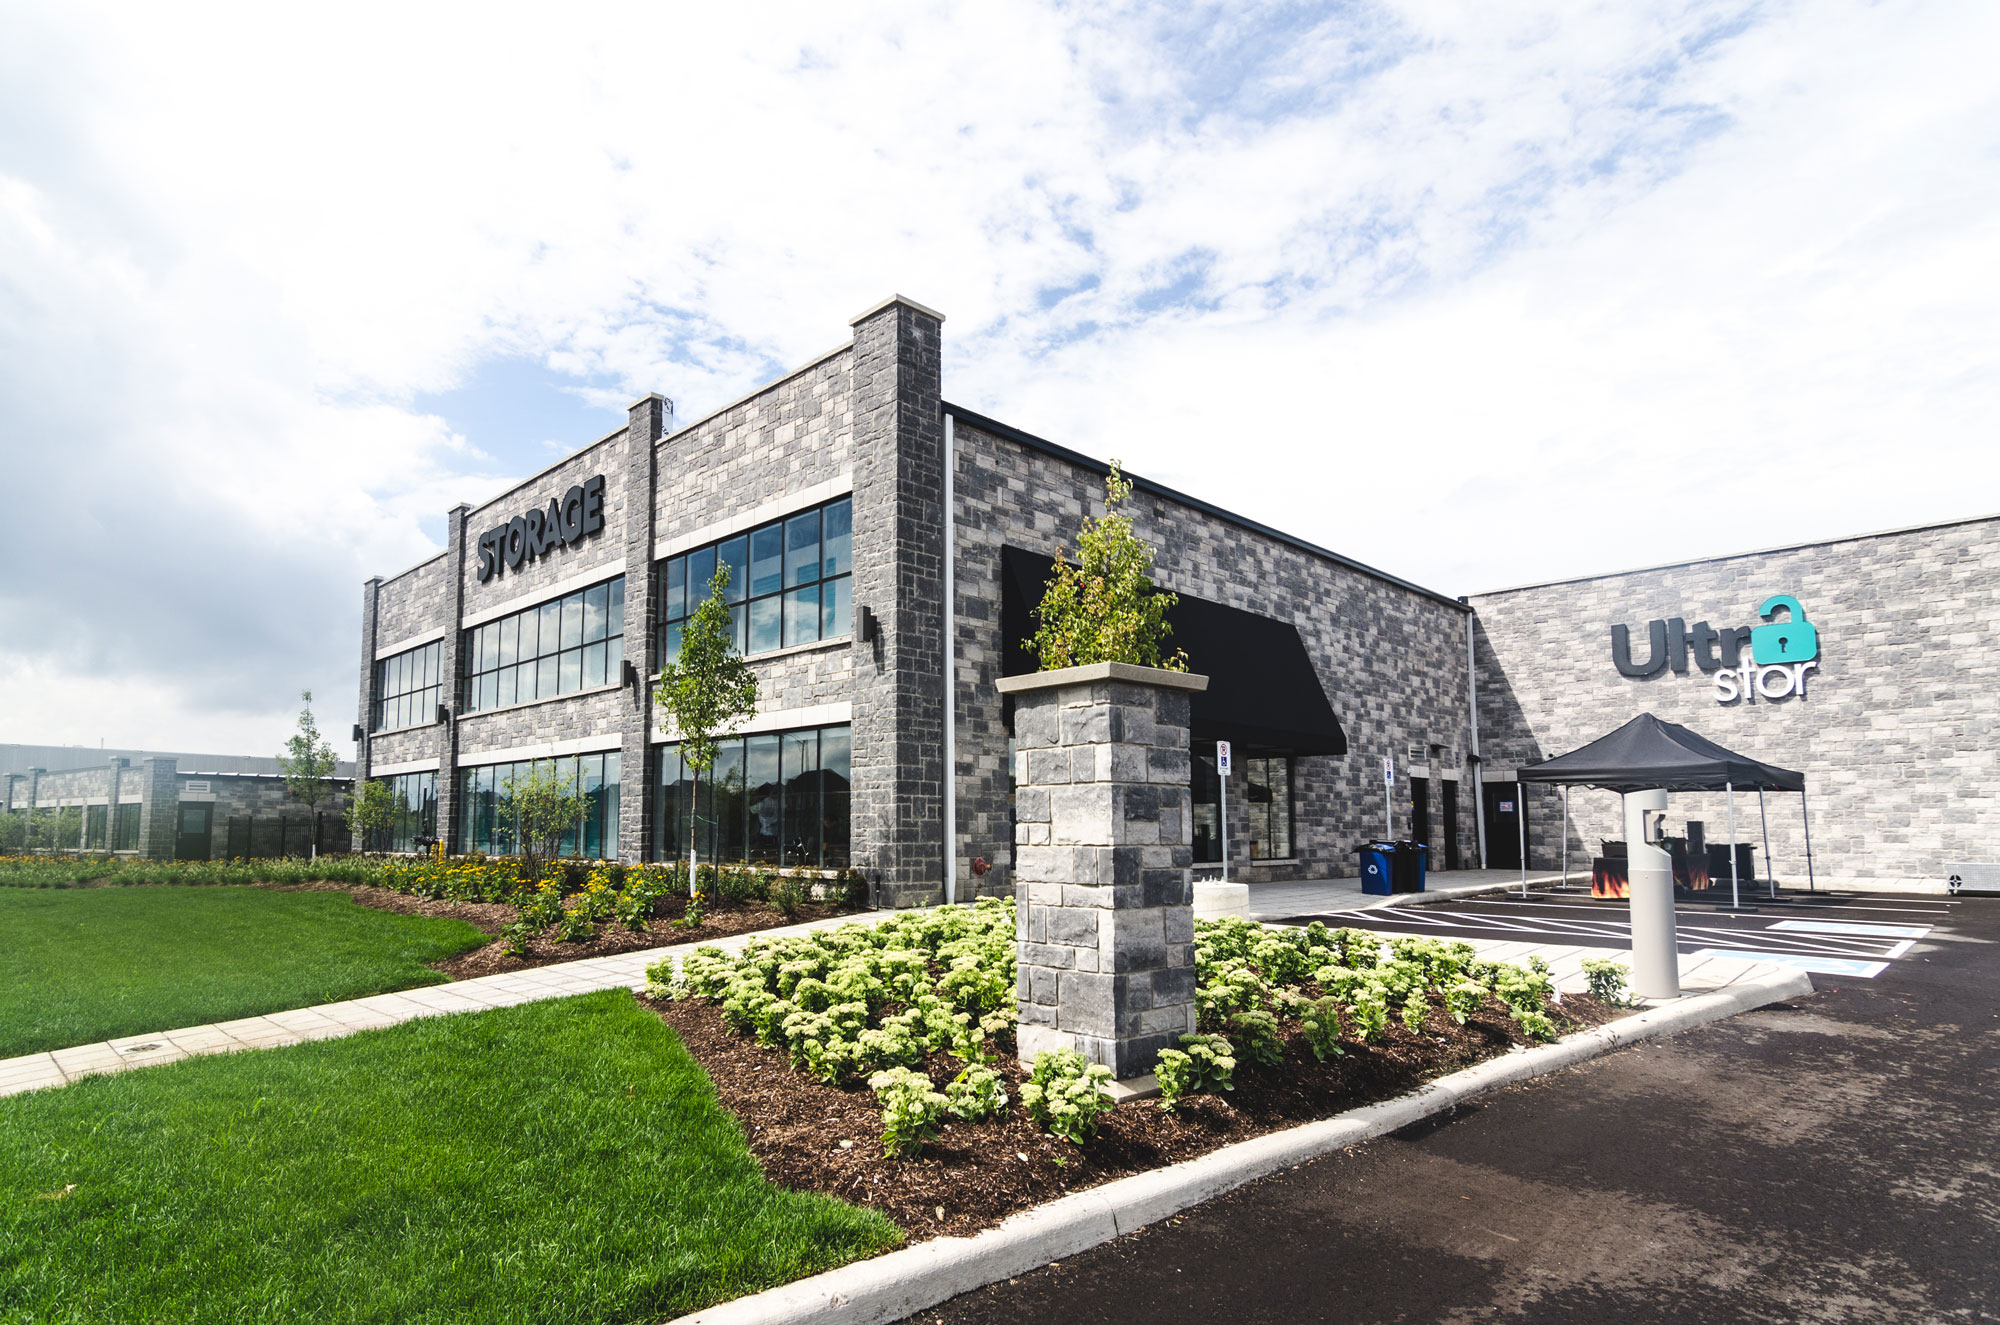 Front of the UltraStor Burlington location, with gardens and the driveway.